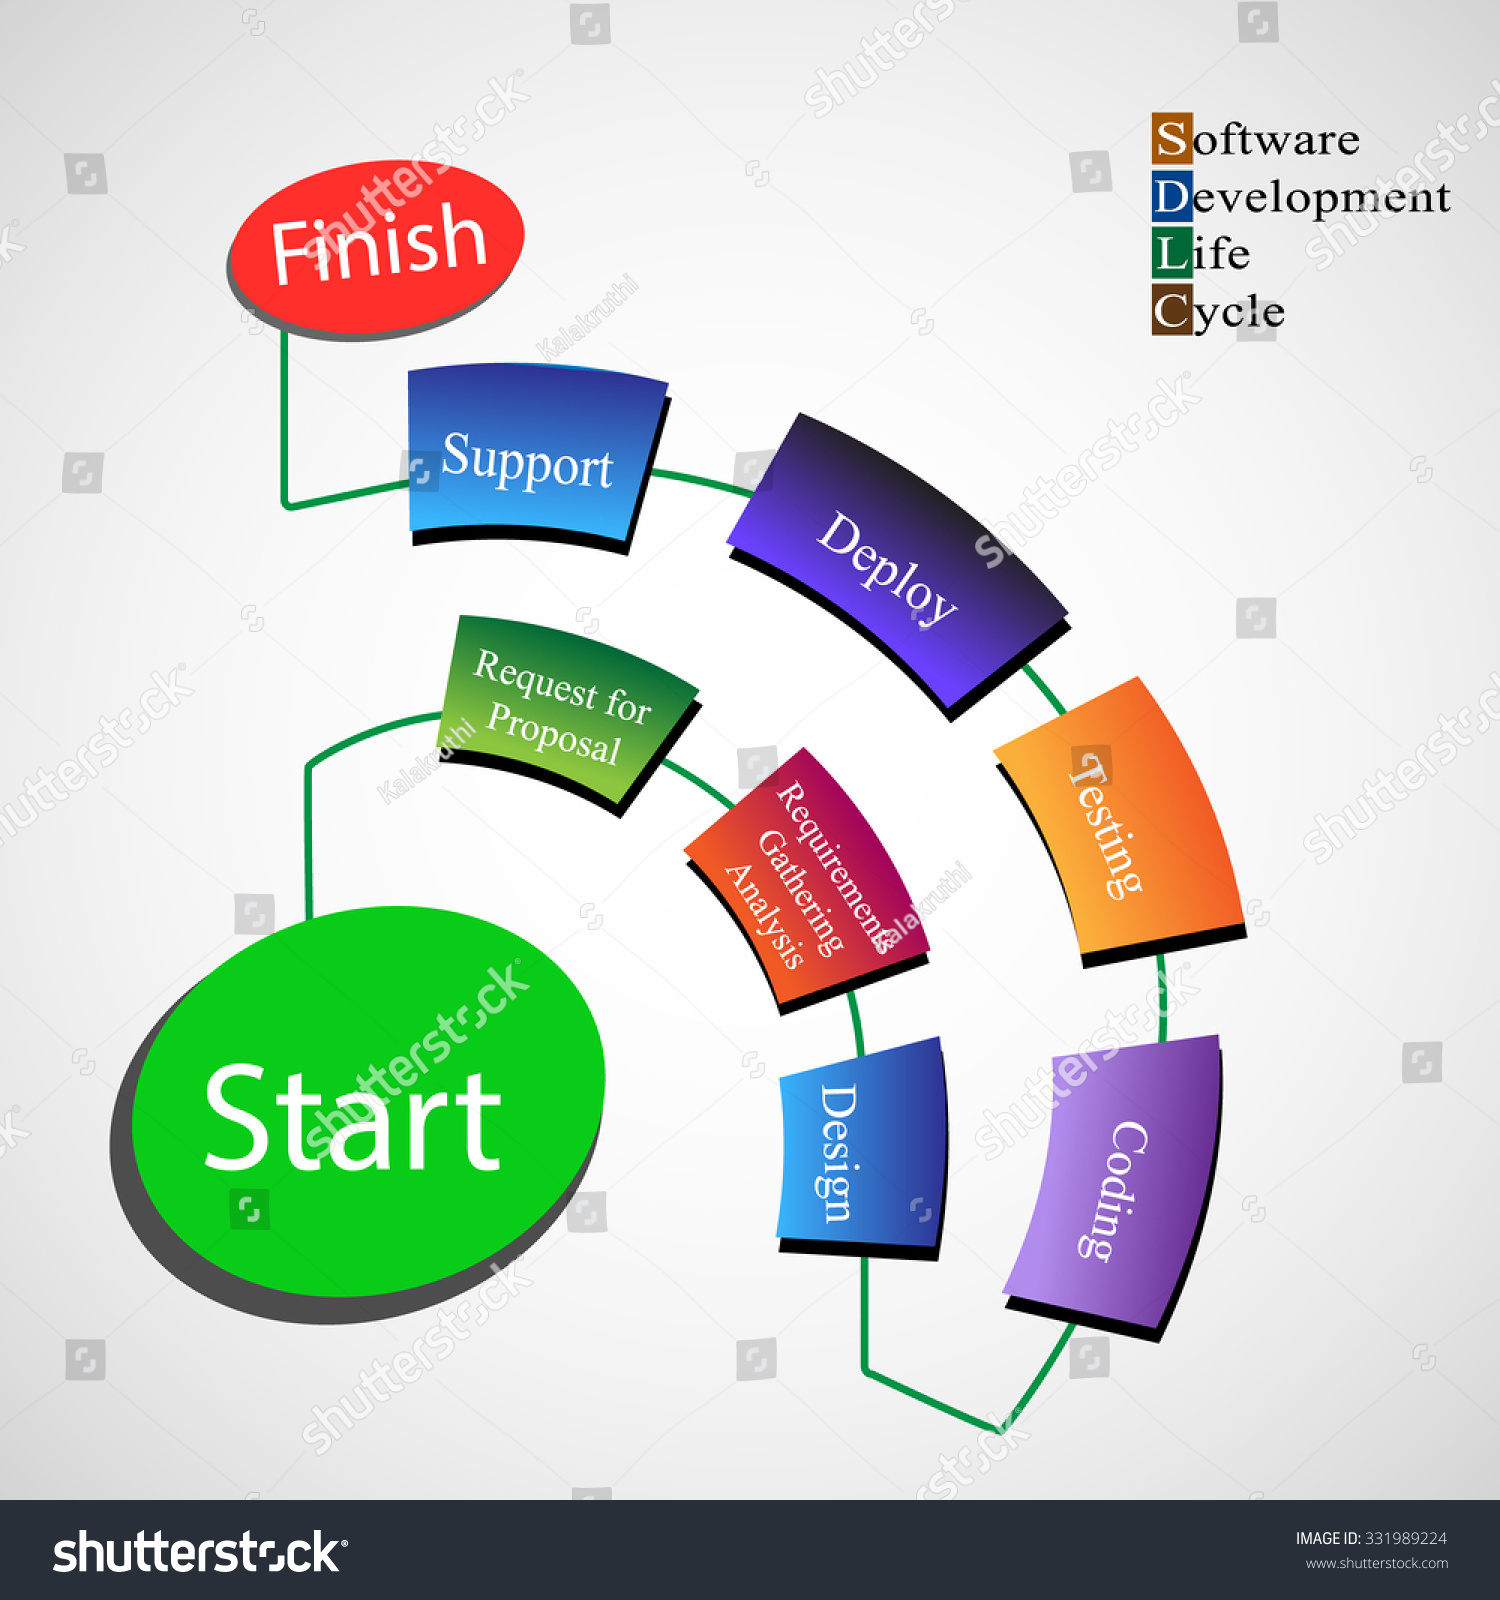 software development life cycle tools